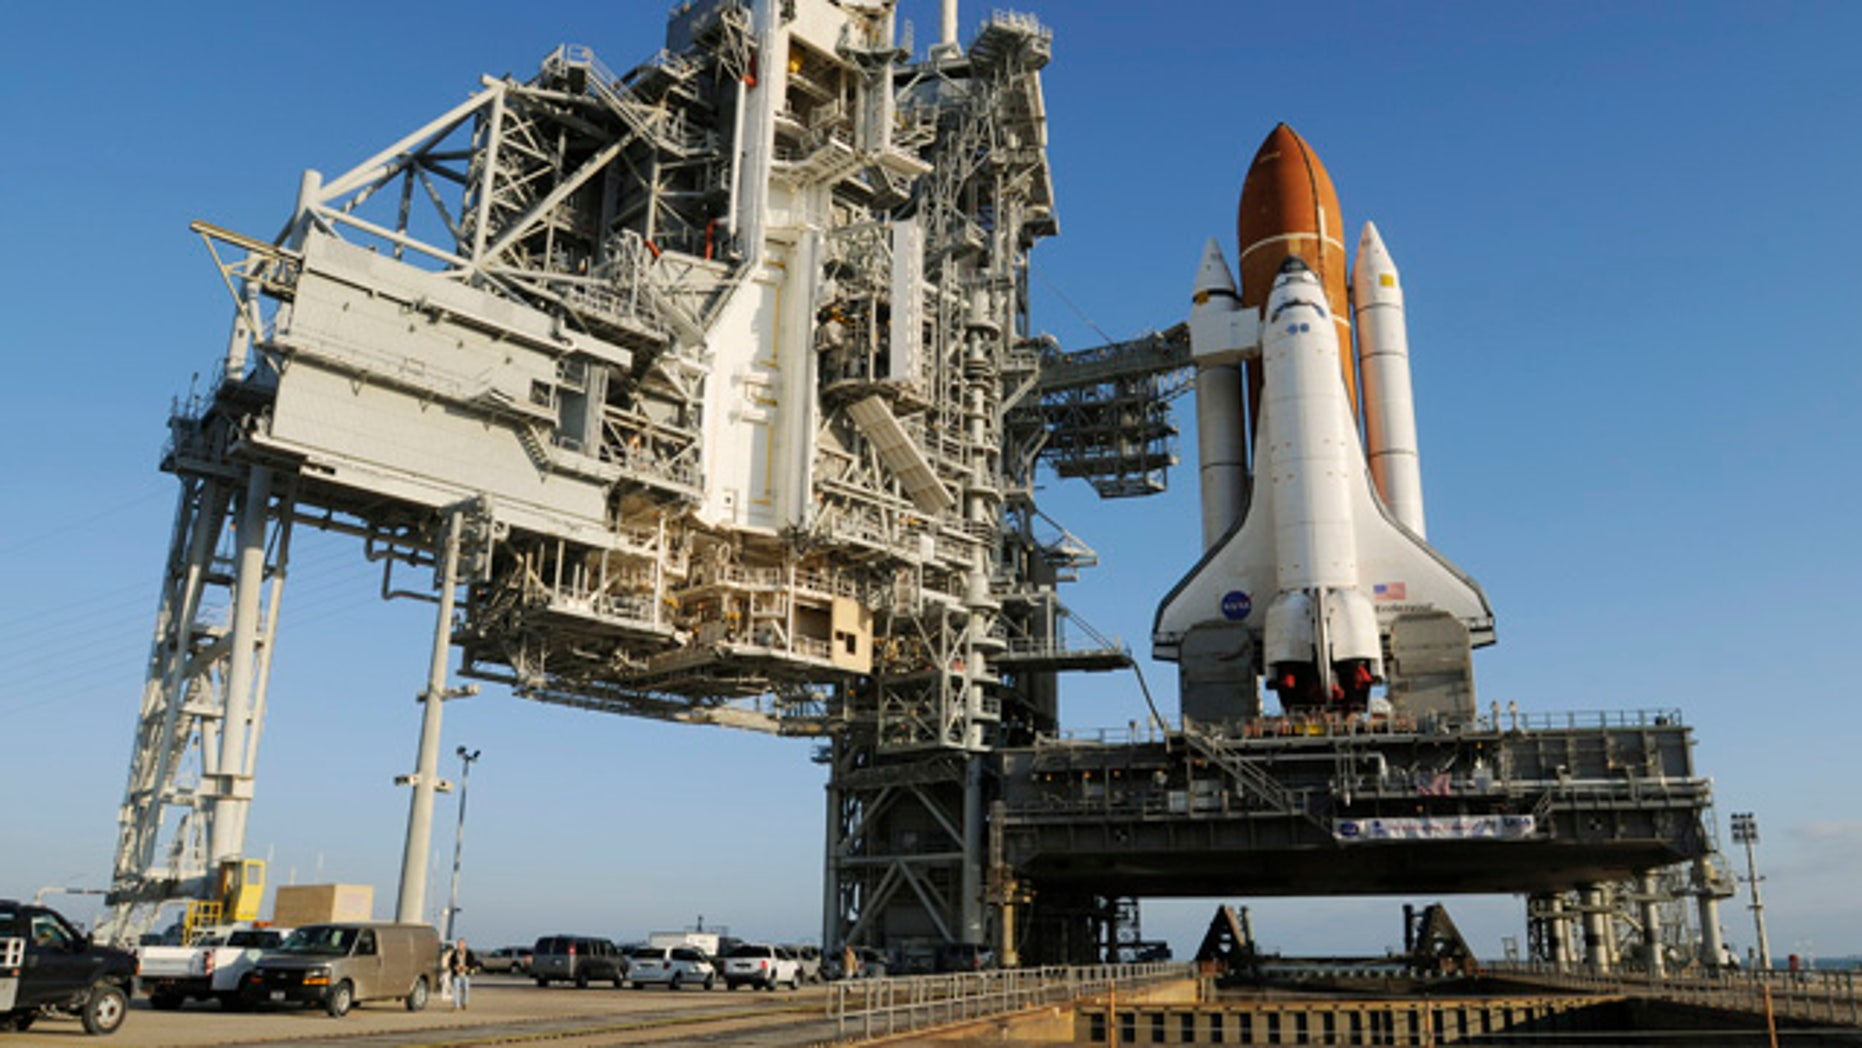 March 11, 2011: Space shuttle Endeavour sits on launch pad 39A. Endeavor is preparing for Mission STS-134 at the Kennedy Space Center which is scheduled for April 19, 2011.